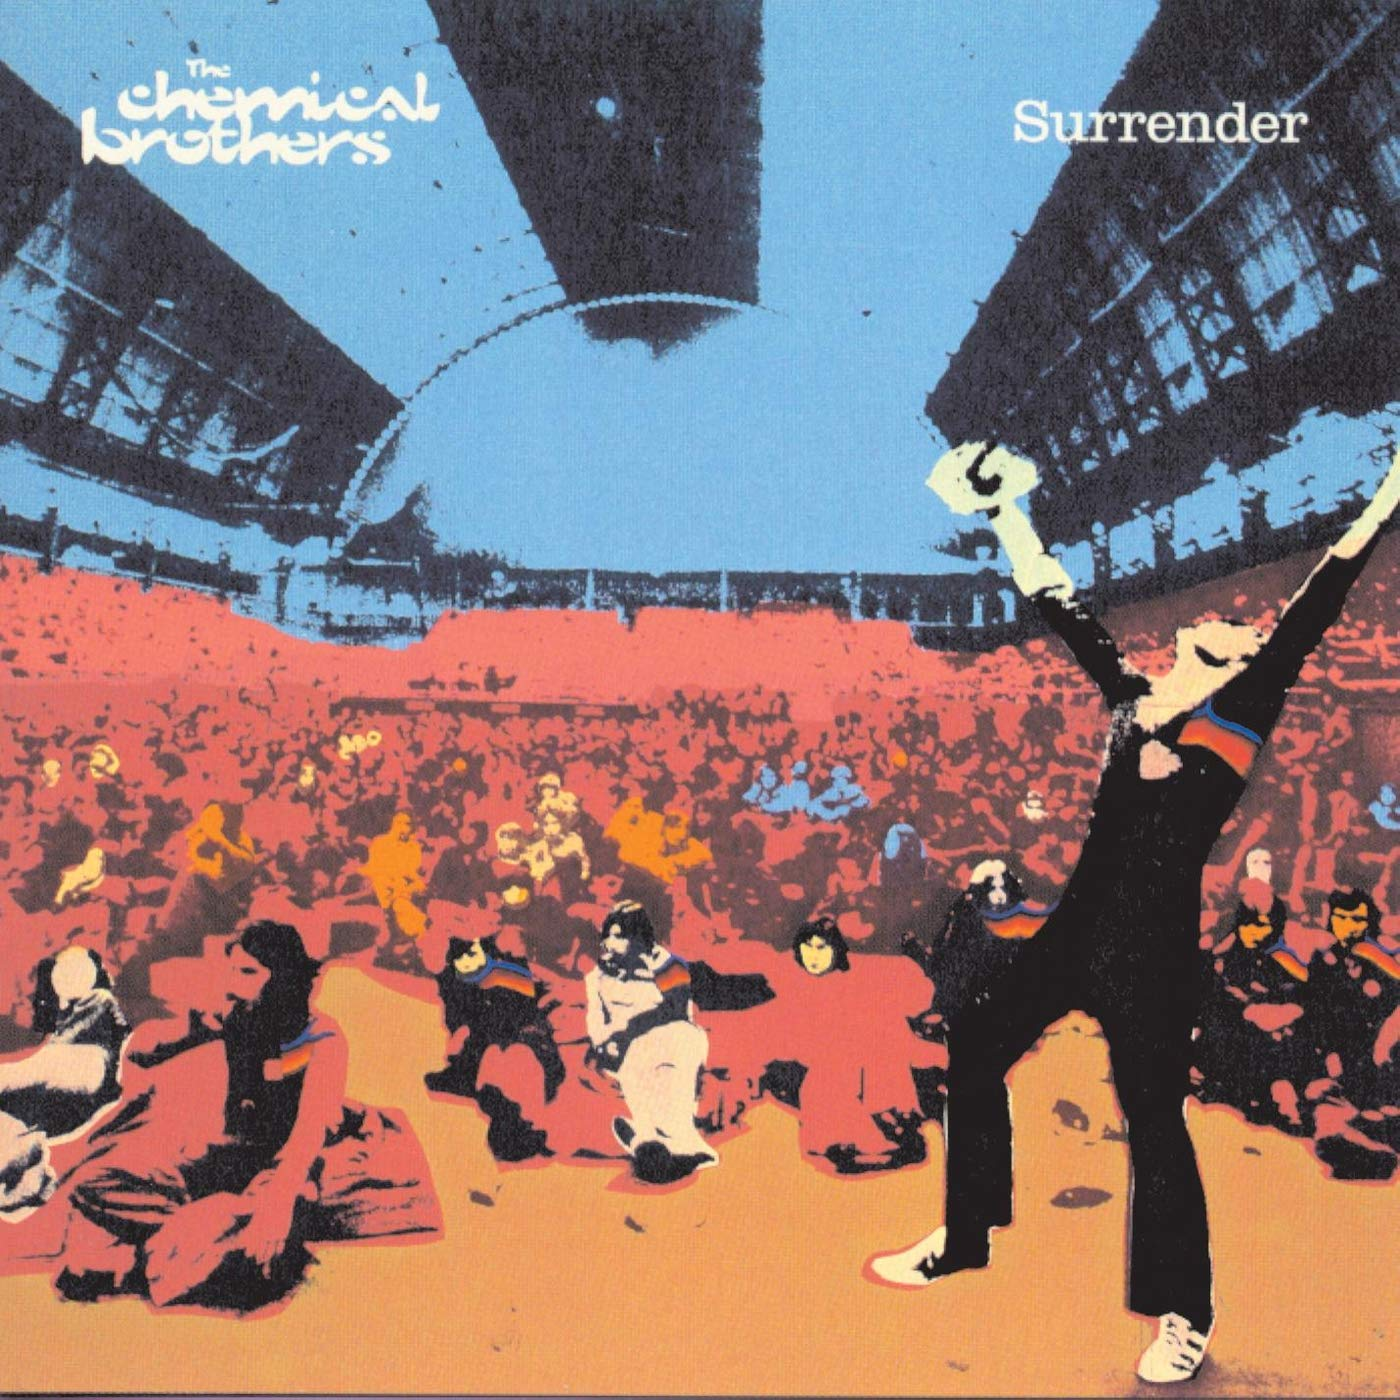 The Chemical Brothers – Surrender (20th Anniversary) (2019) [FLAC]